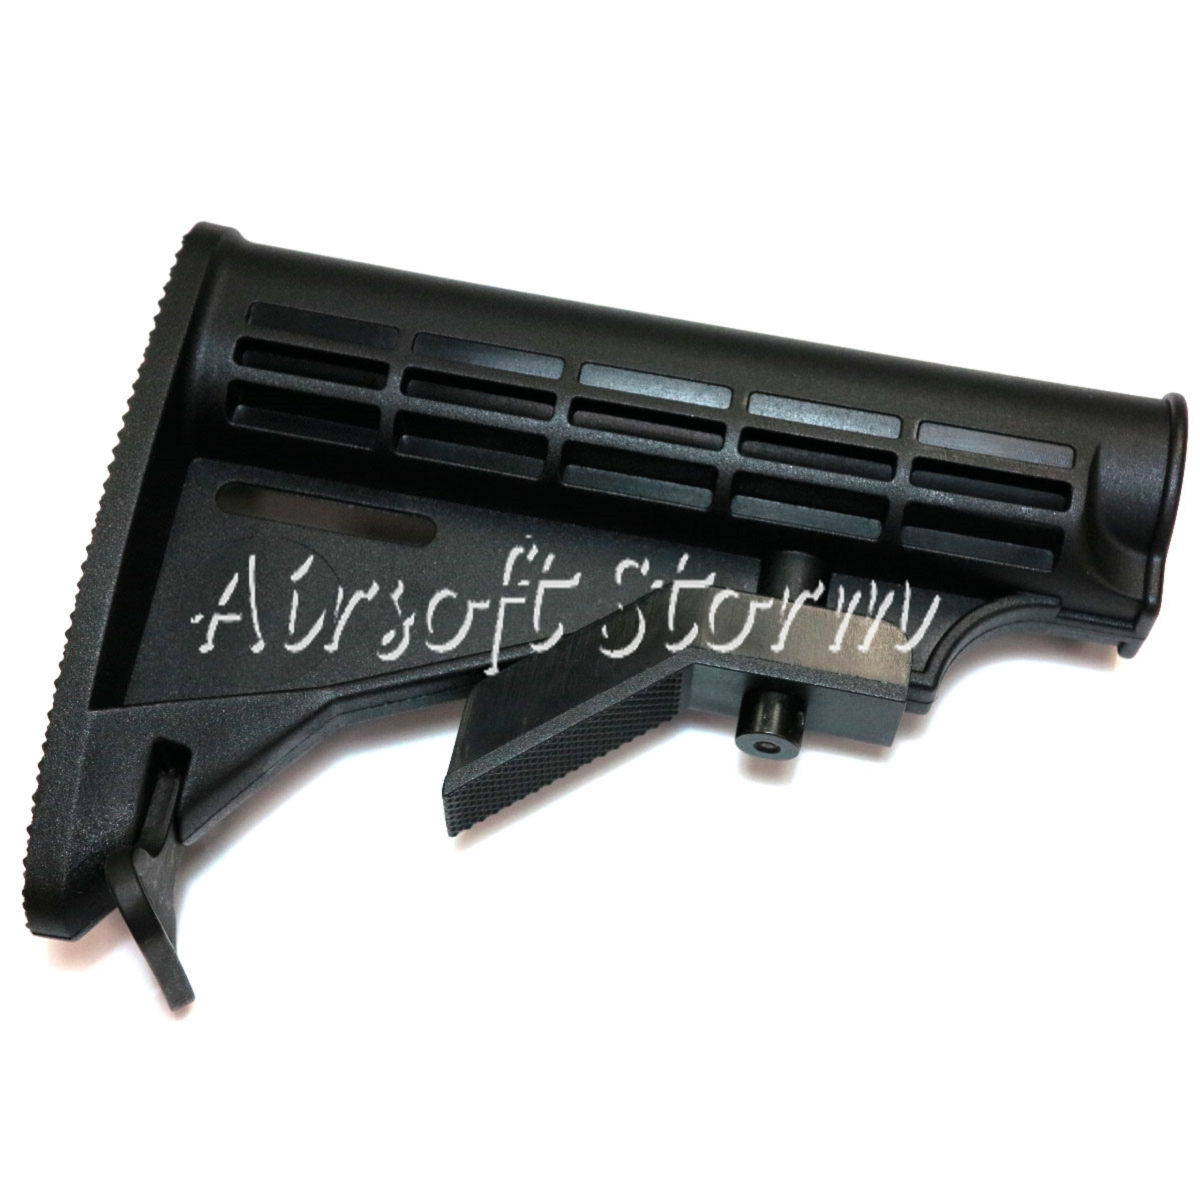 Airsoft Tactical Gear D-Boys 6 Position Sliding Stock for HK416 / M4 / M16 AEG Black